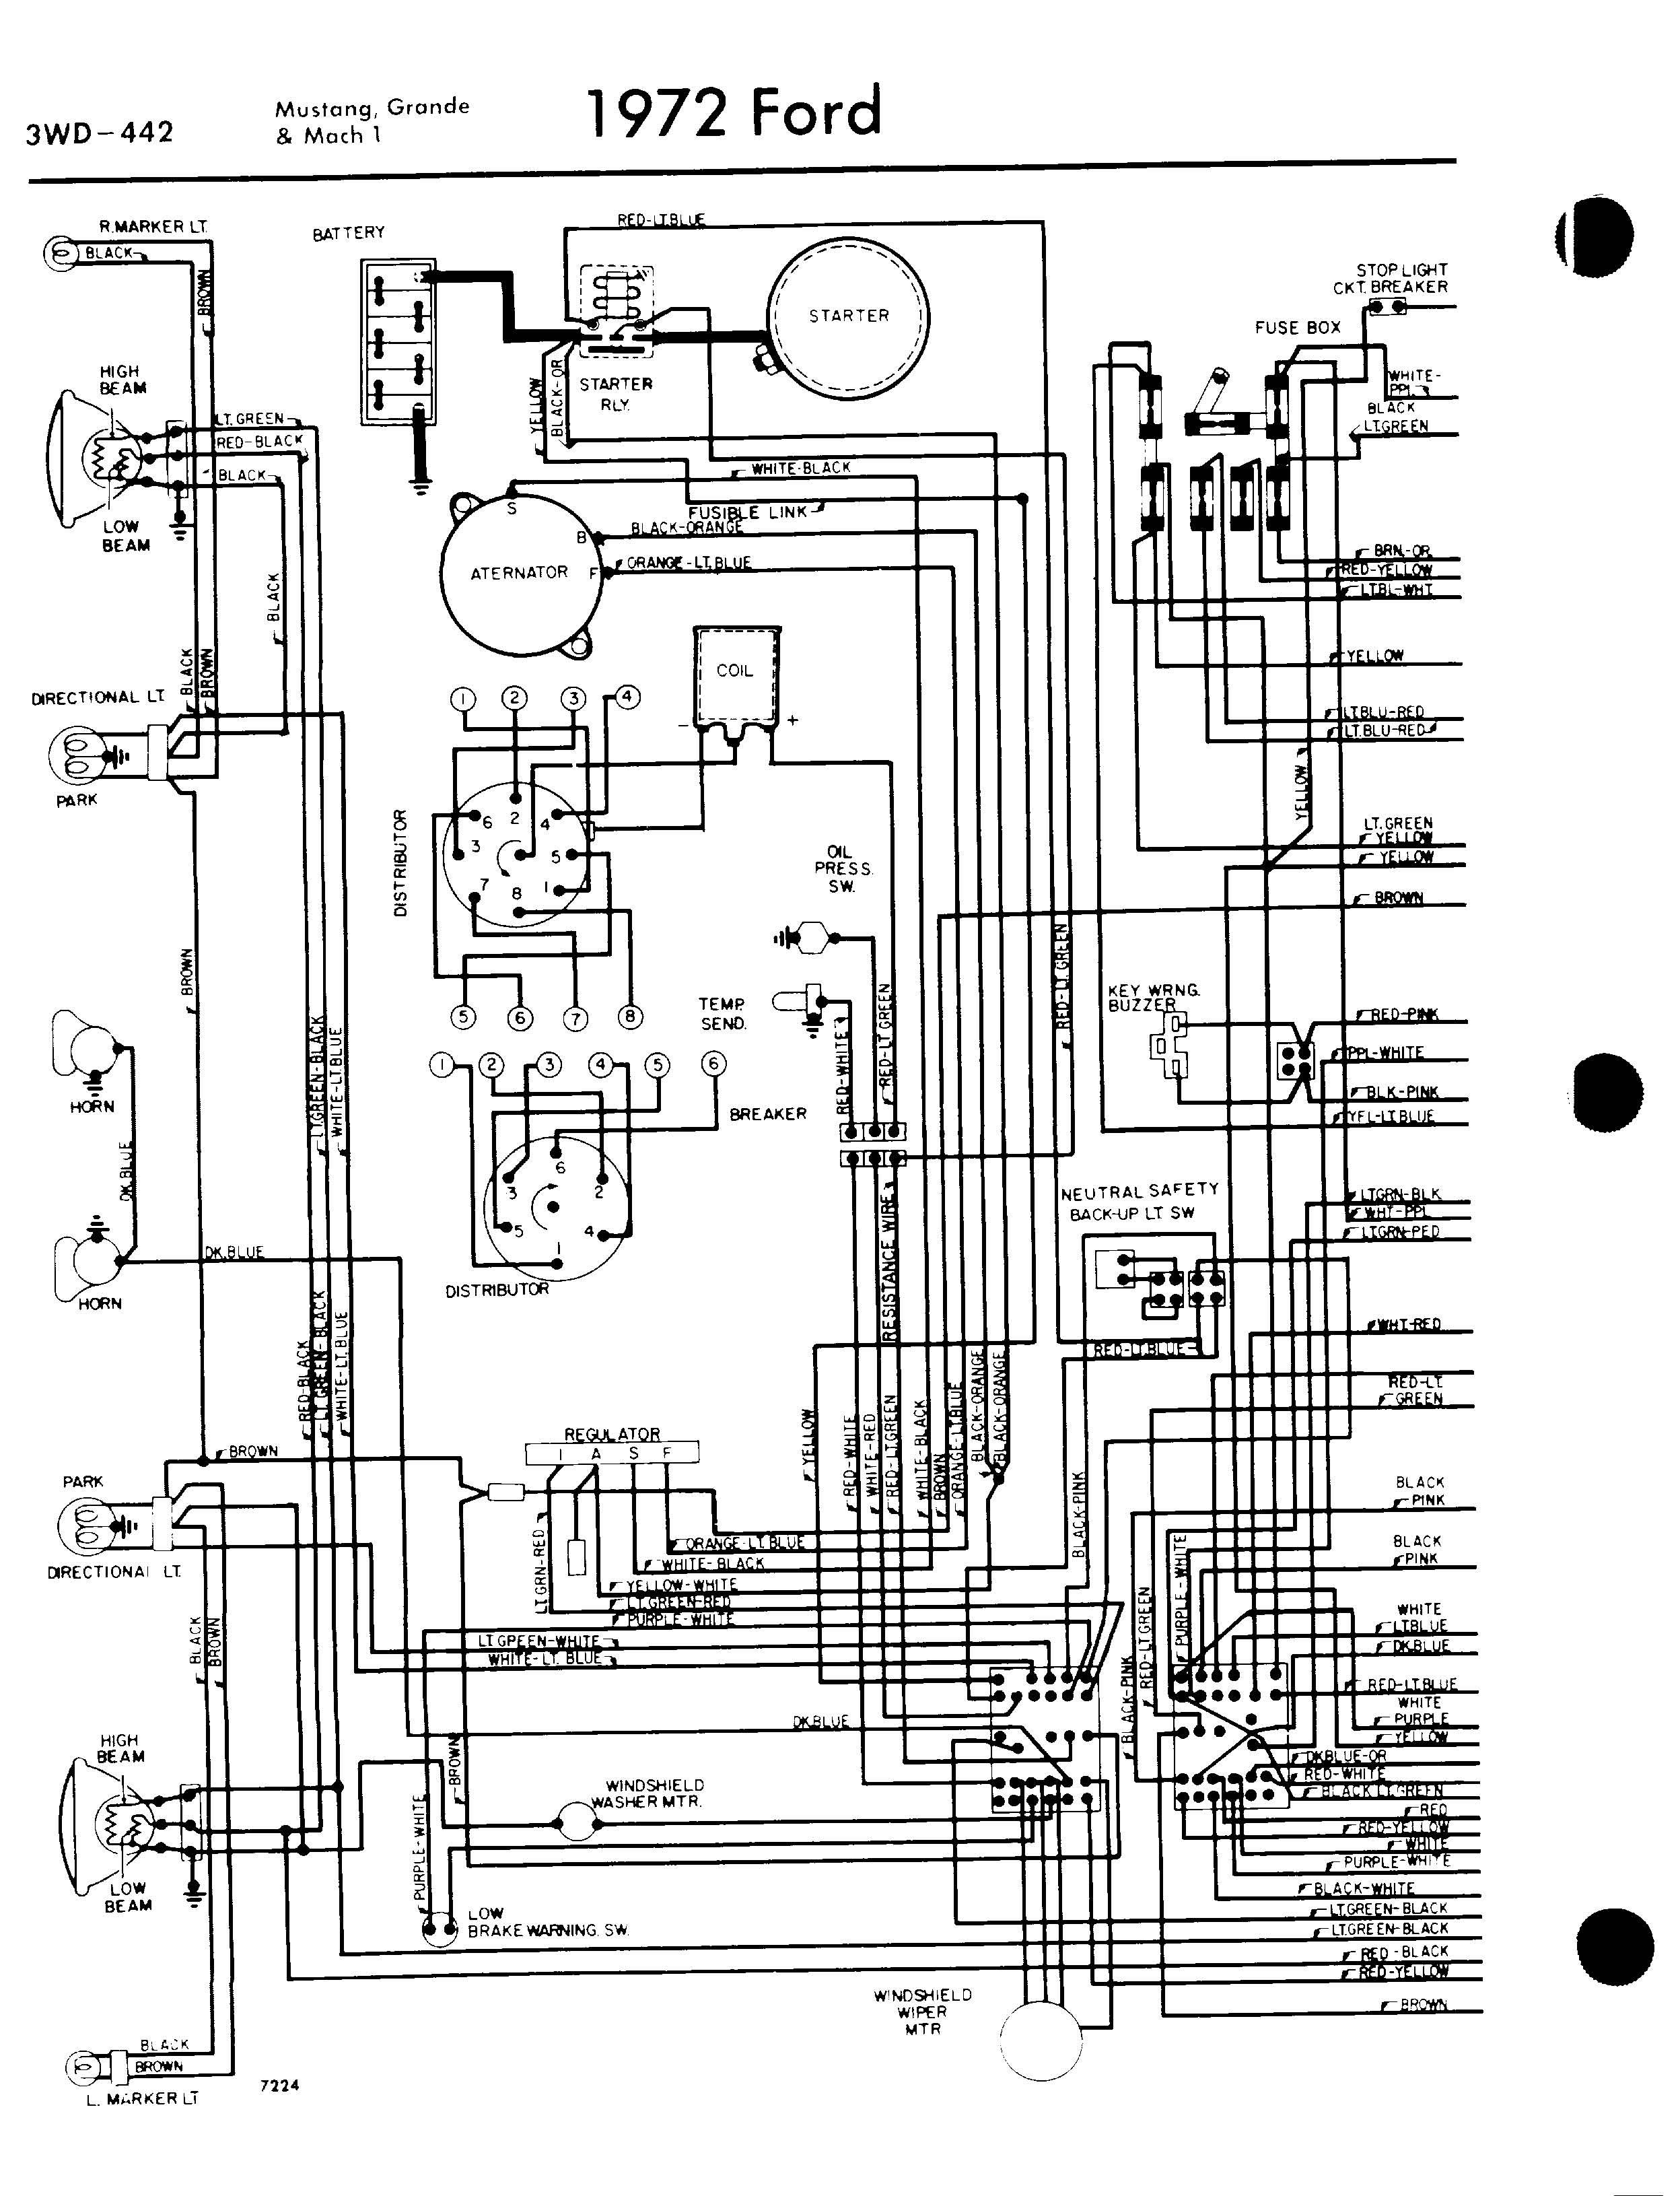 mach alternator wire harness diagram yahoo search results 72 mach1 alternator wire harness diagram yahoo search results yahoo image search results